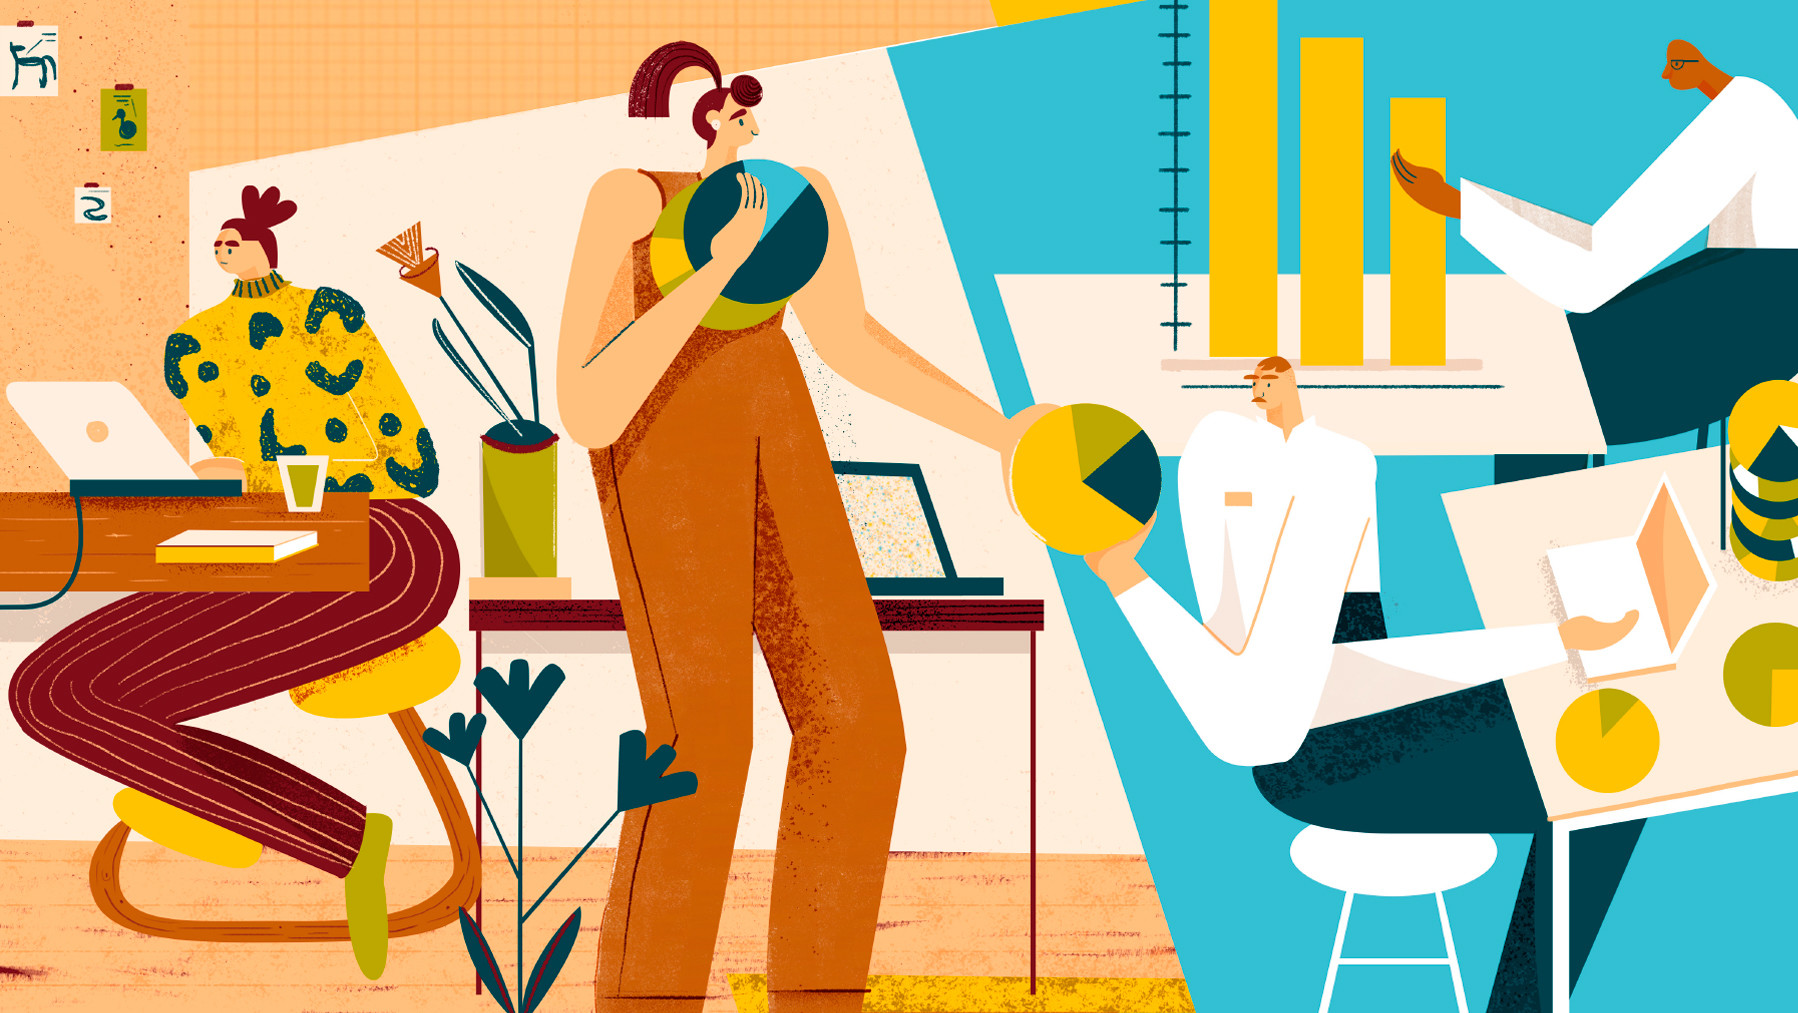 Illustrations showing data being used in the workplace.